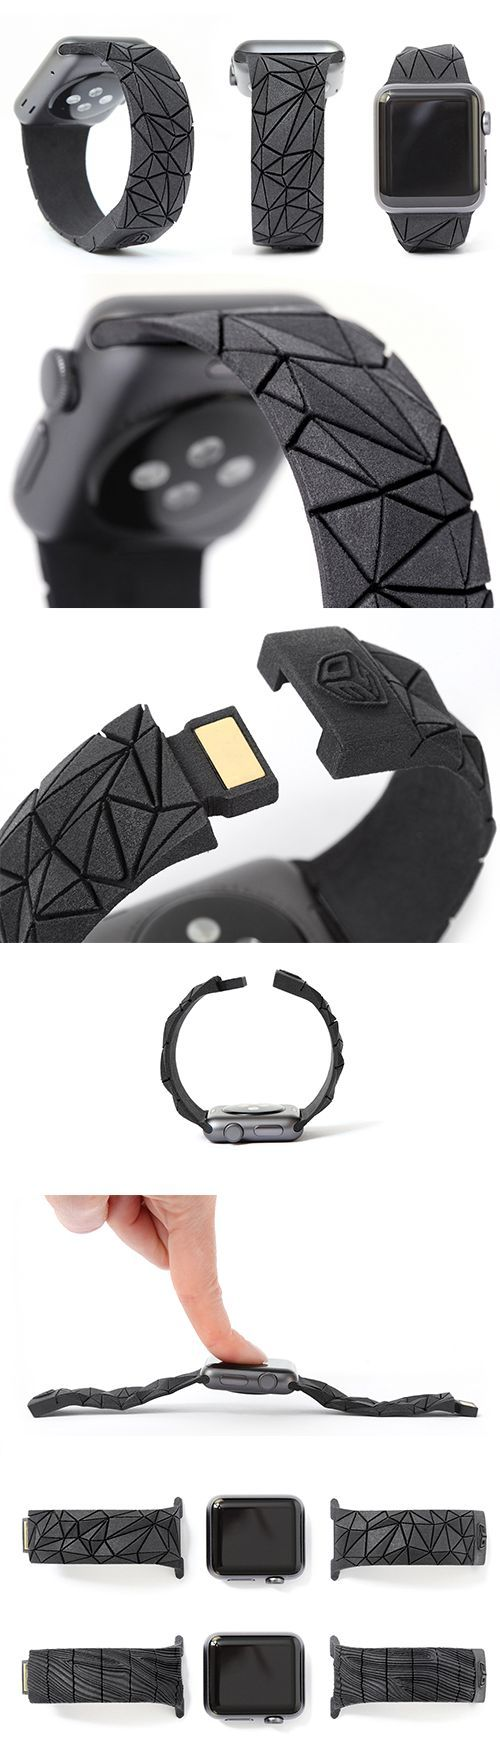 It's Time - 4 Kinds of 3D Printed Watches, Clocks, and other...